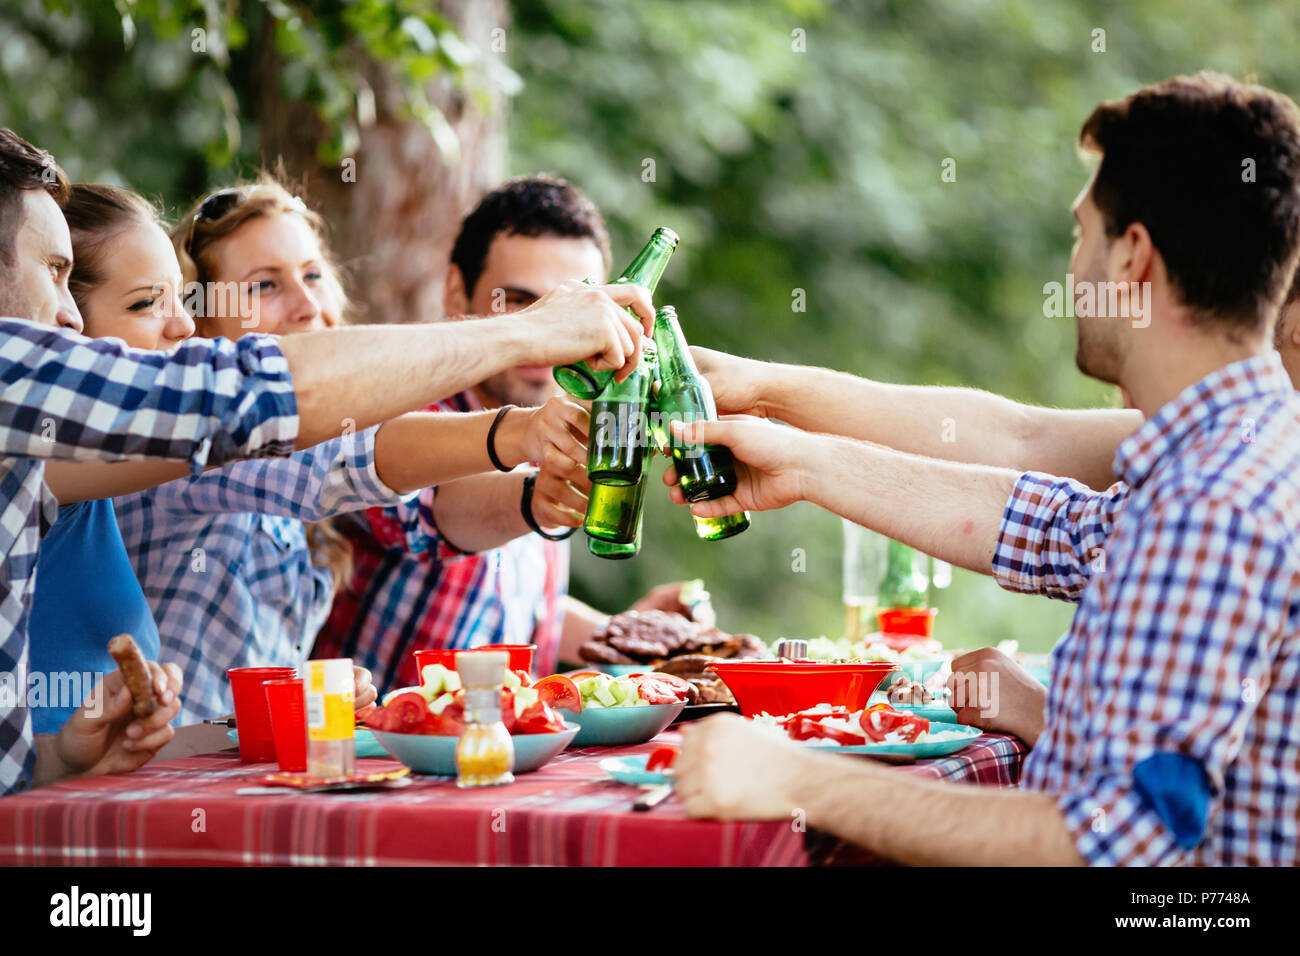 Group of happy people eating food outdoors Stock Photo